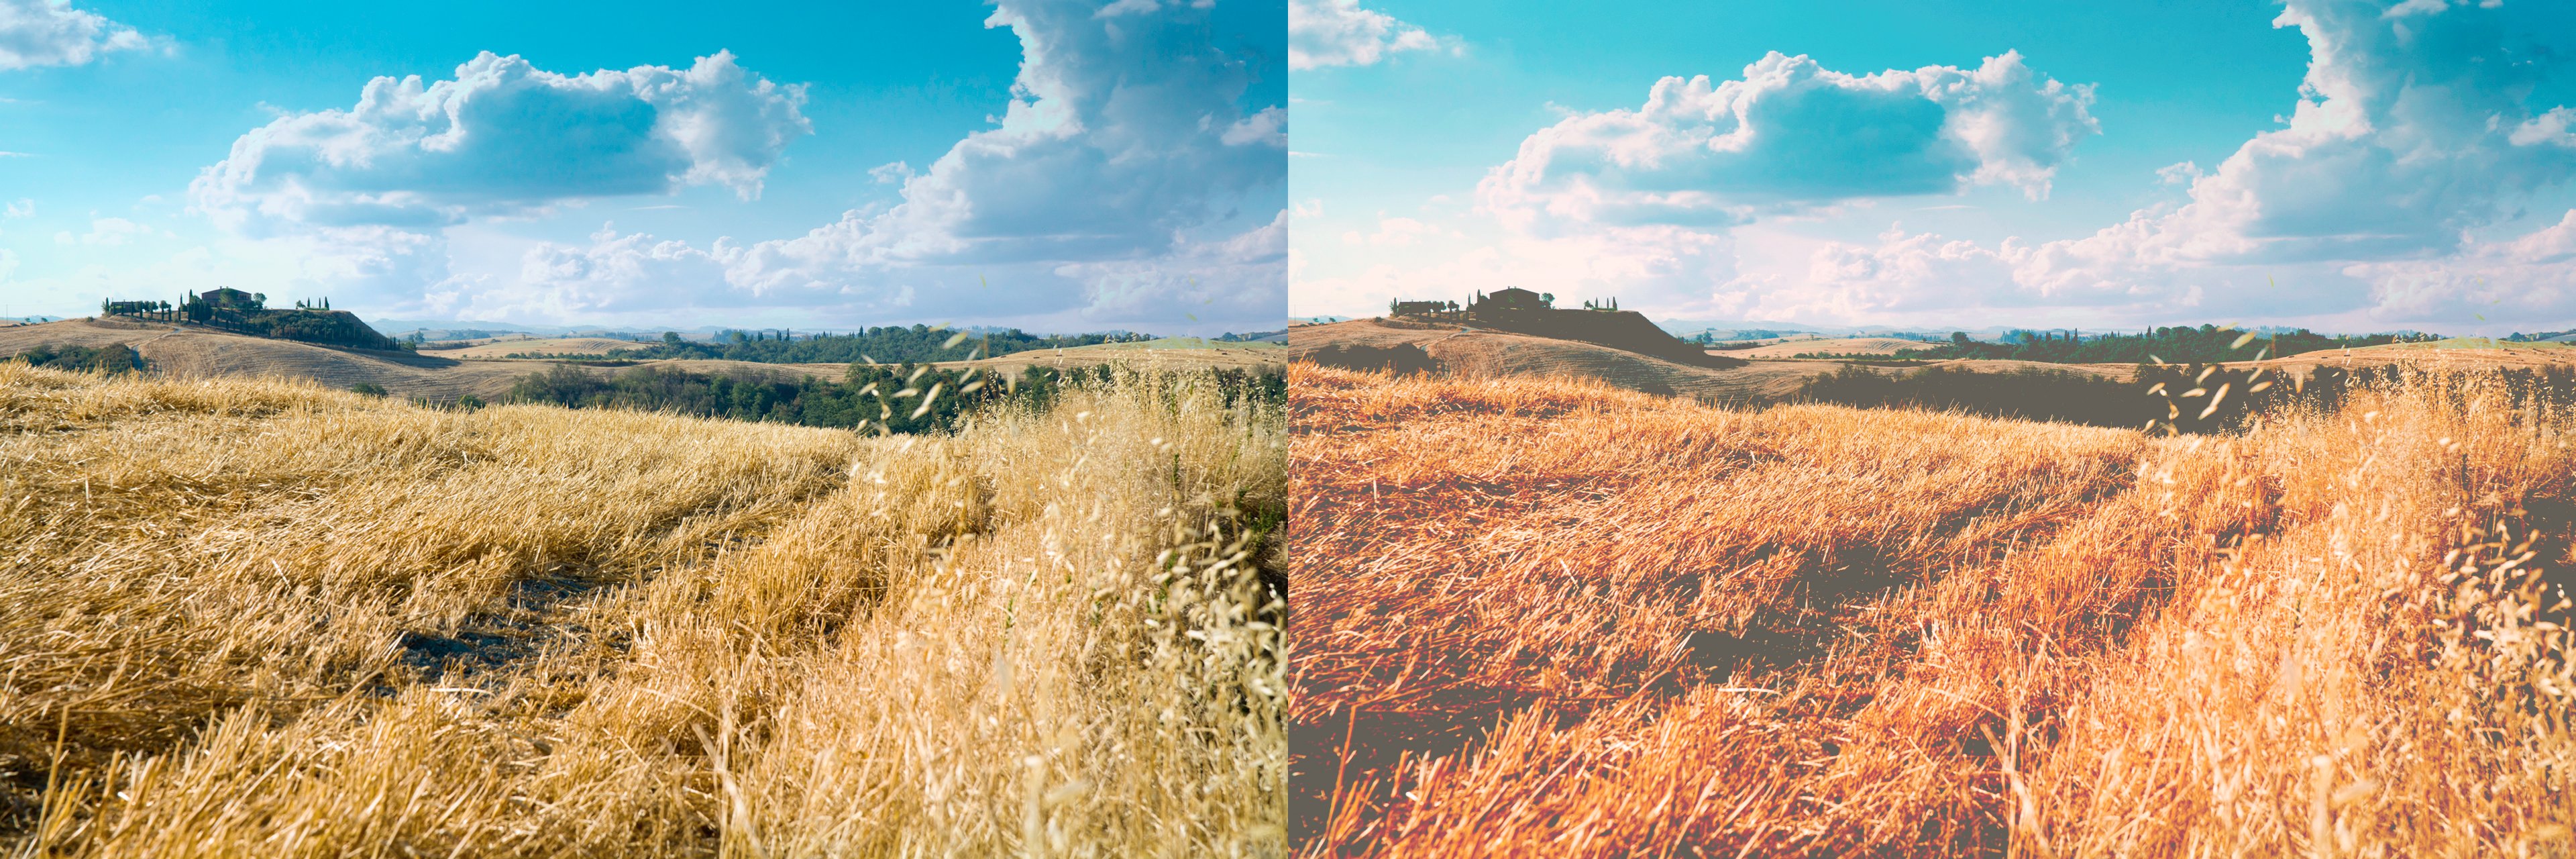 VSCO Cam tutorial - Side by side comparison